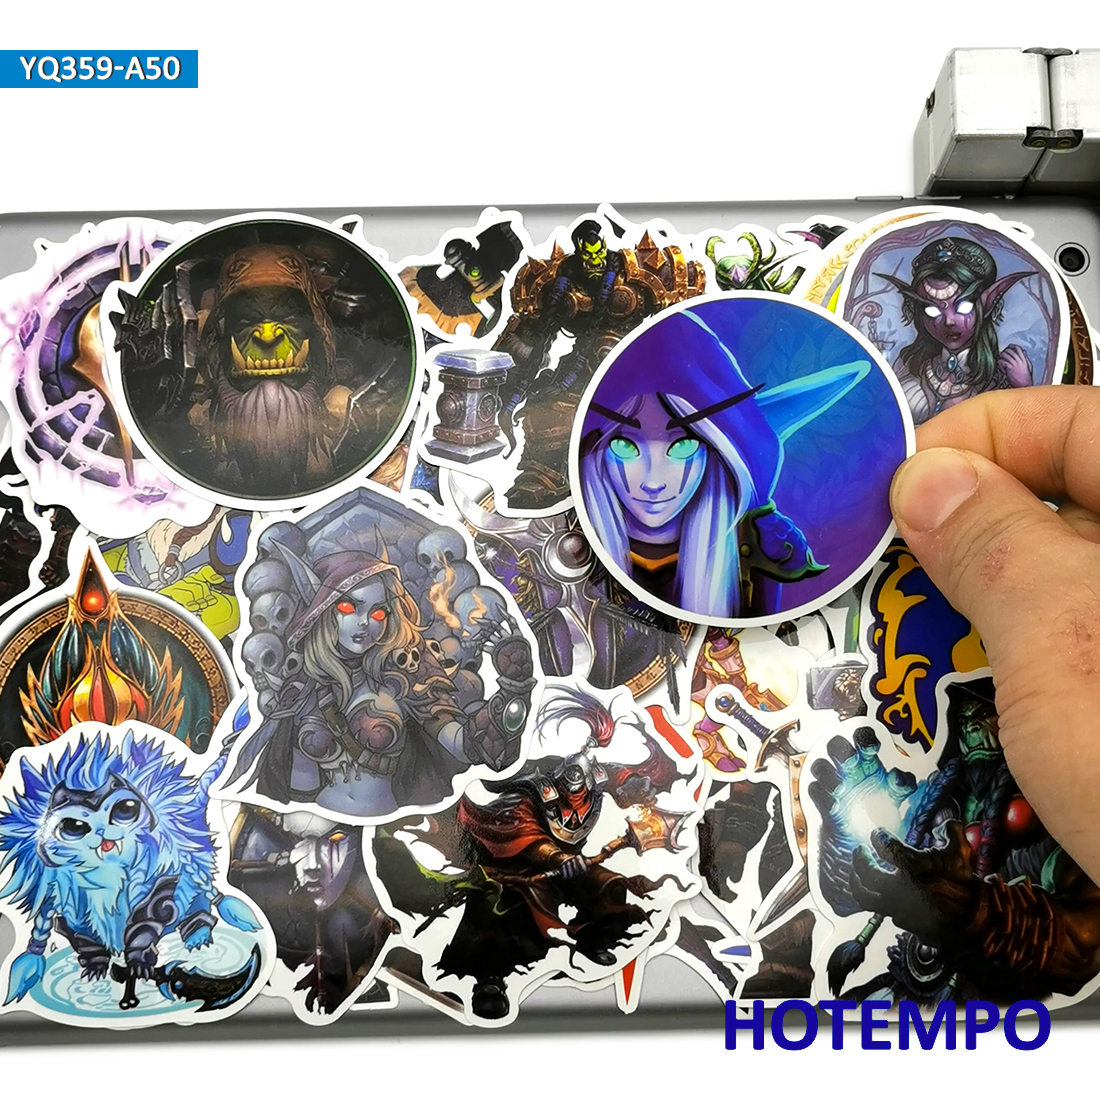 50pcs Classic Game Azeroth World Anime Style Stickers Toy For Kid Mobile Phone Laptop Luggage Case Skateboard Car Decal Stickers